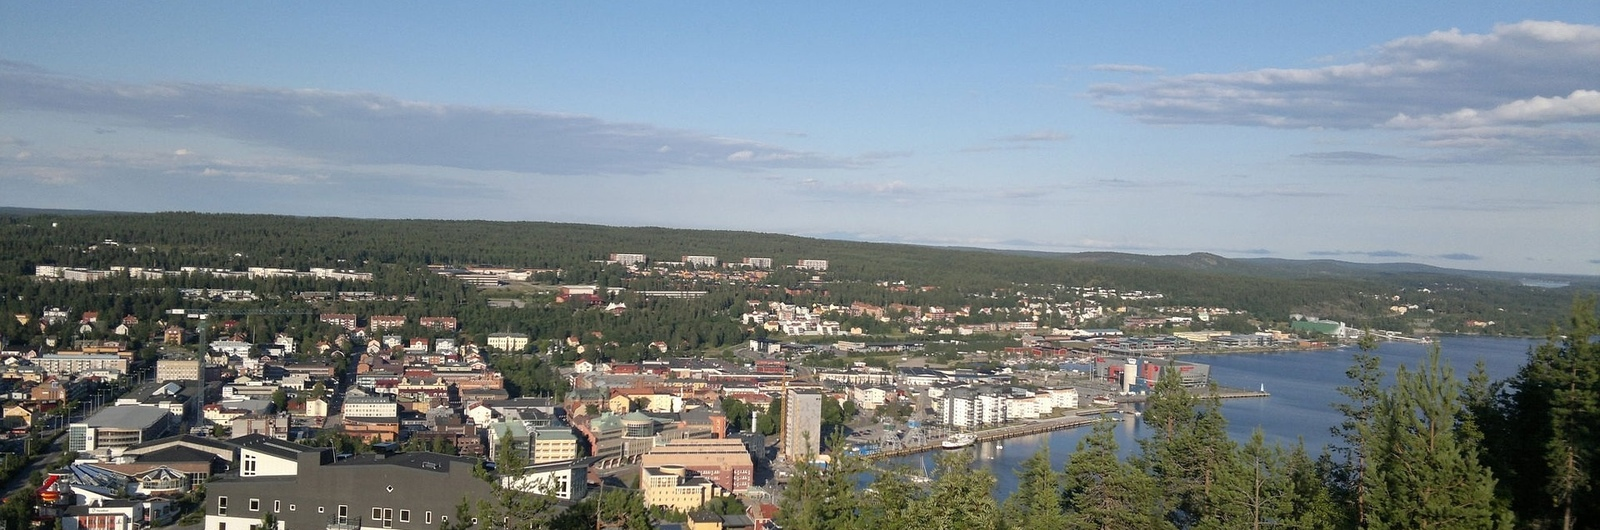 umea city header